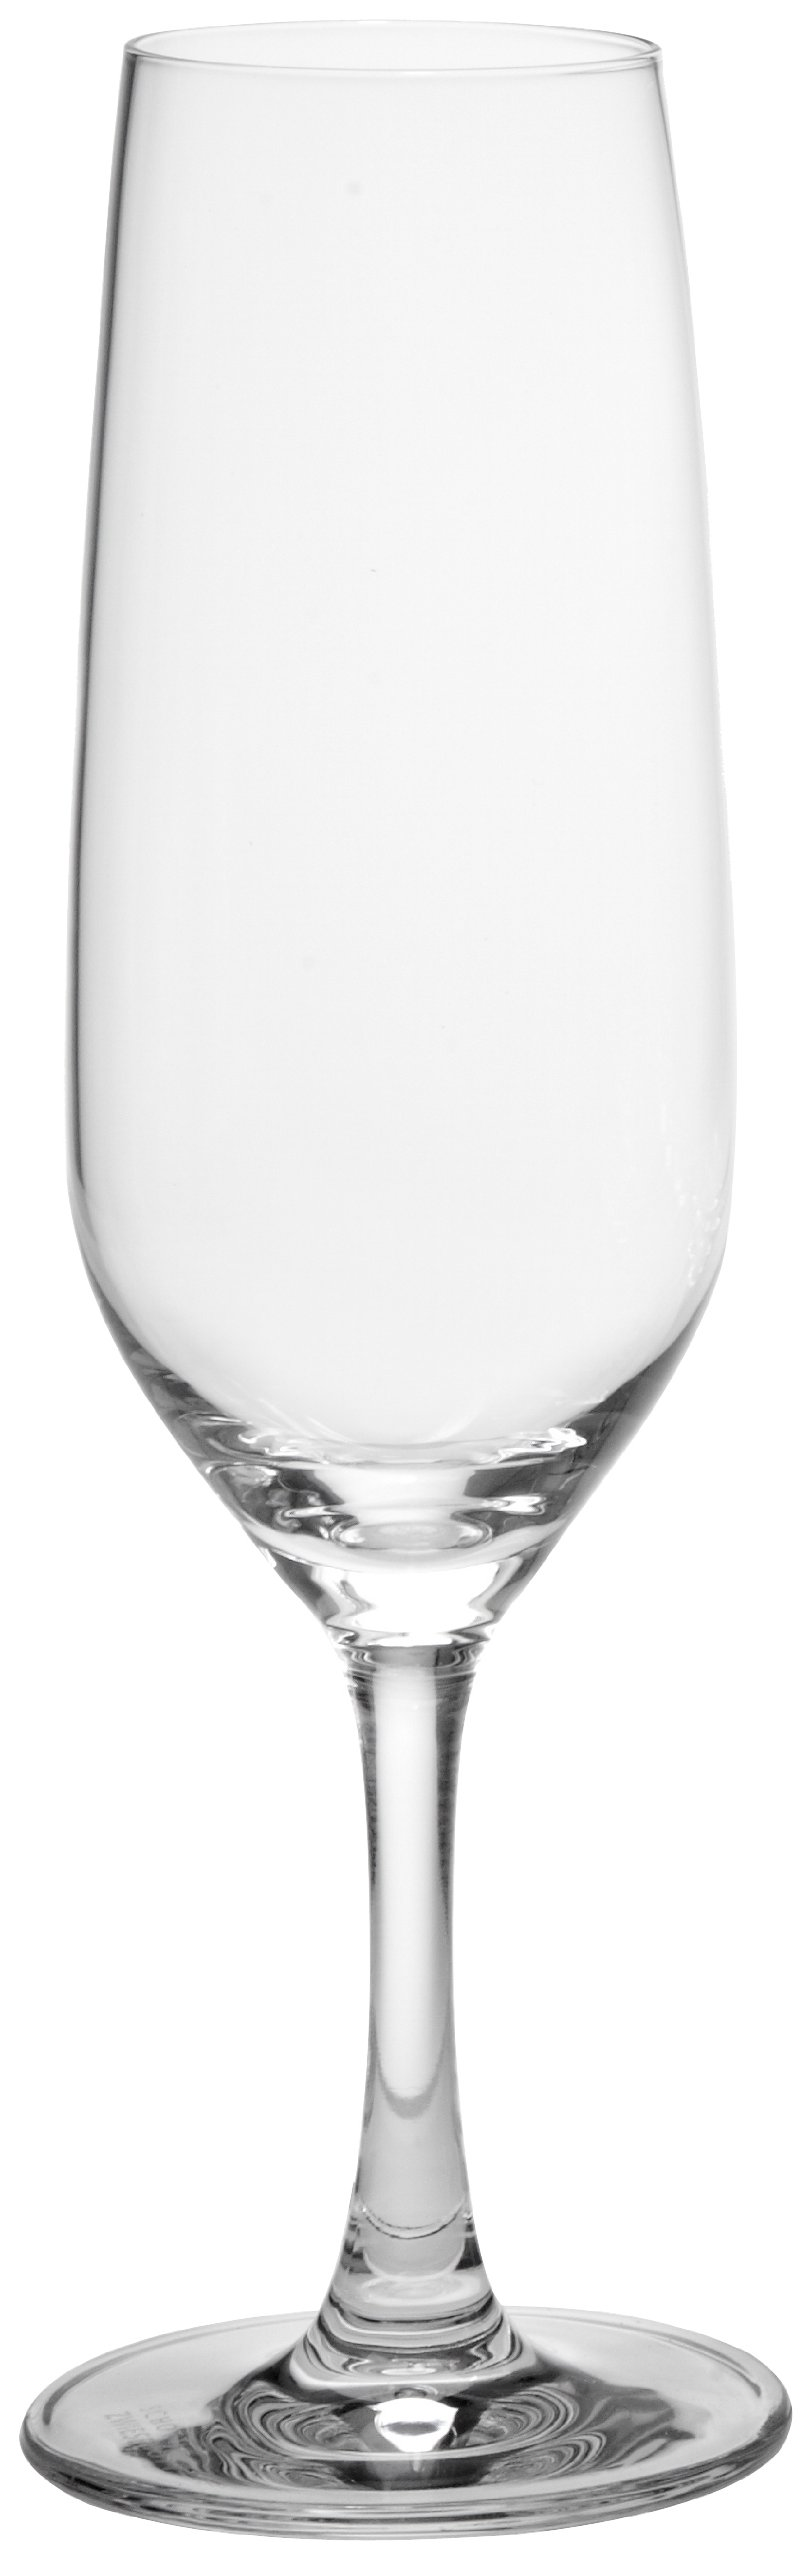 Schott Zwiesel Tritan Crystal Glass Congresso Stemware Collection Champagne Flute, 8-Ounce, Set of 6